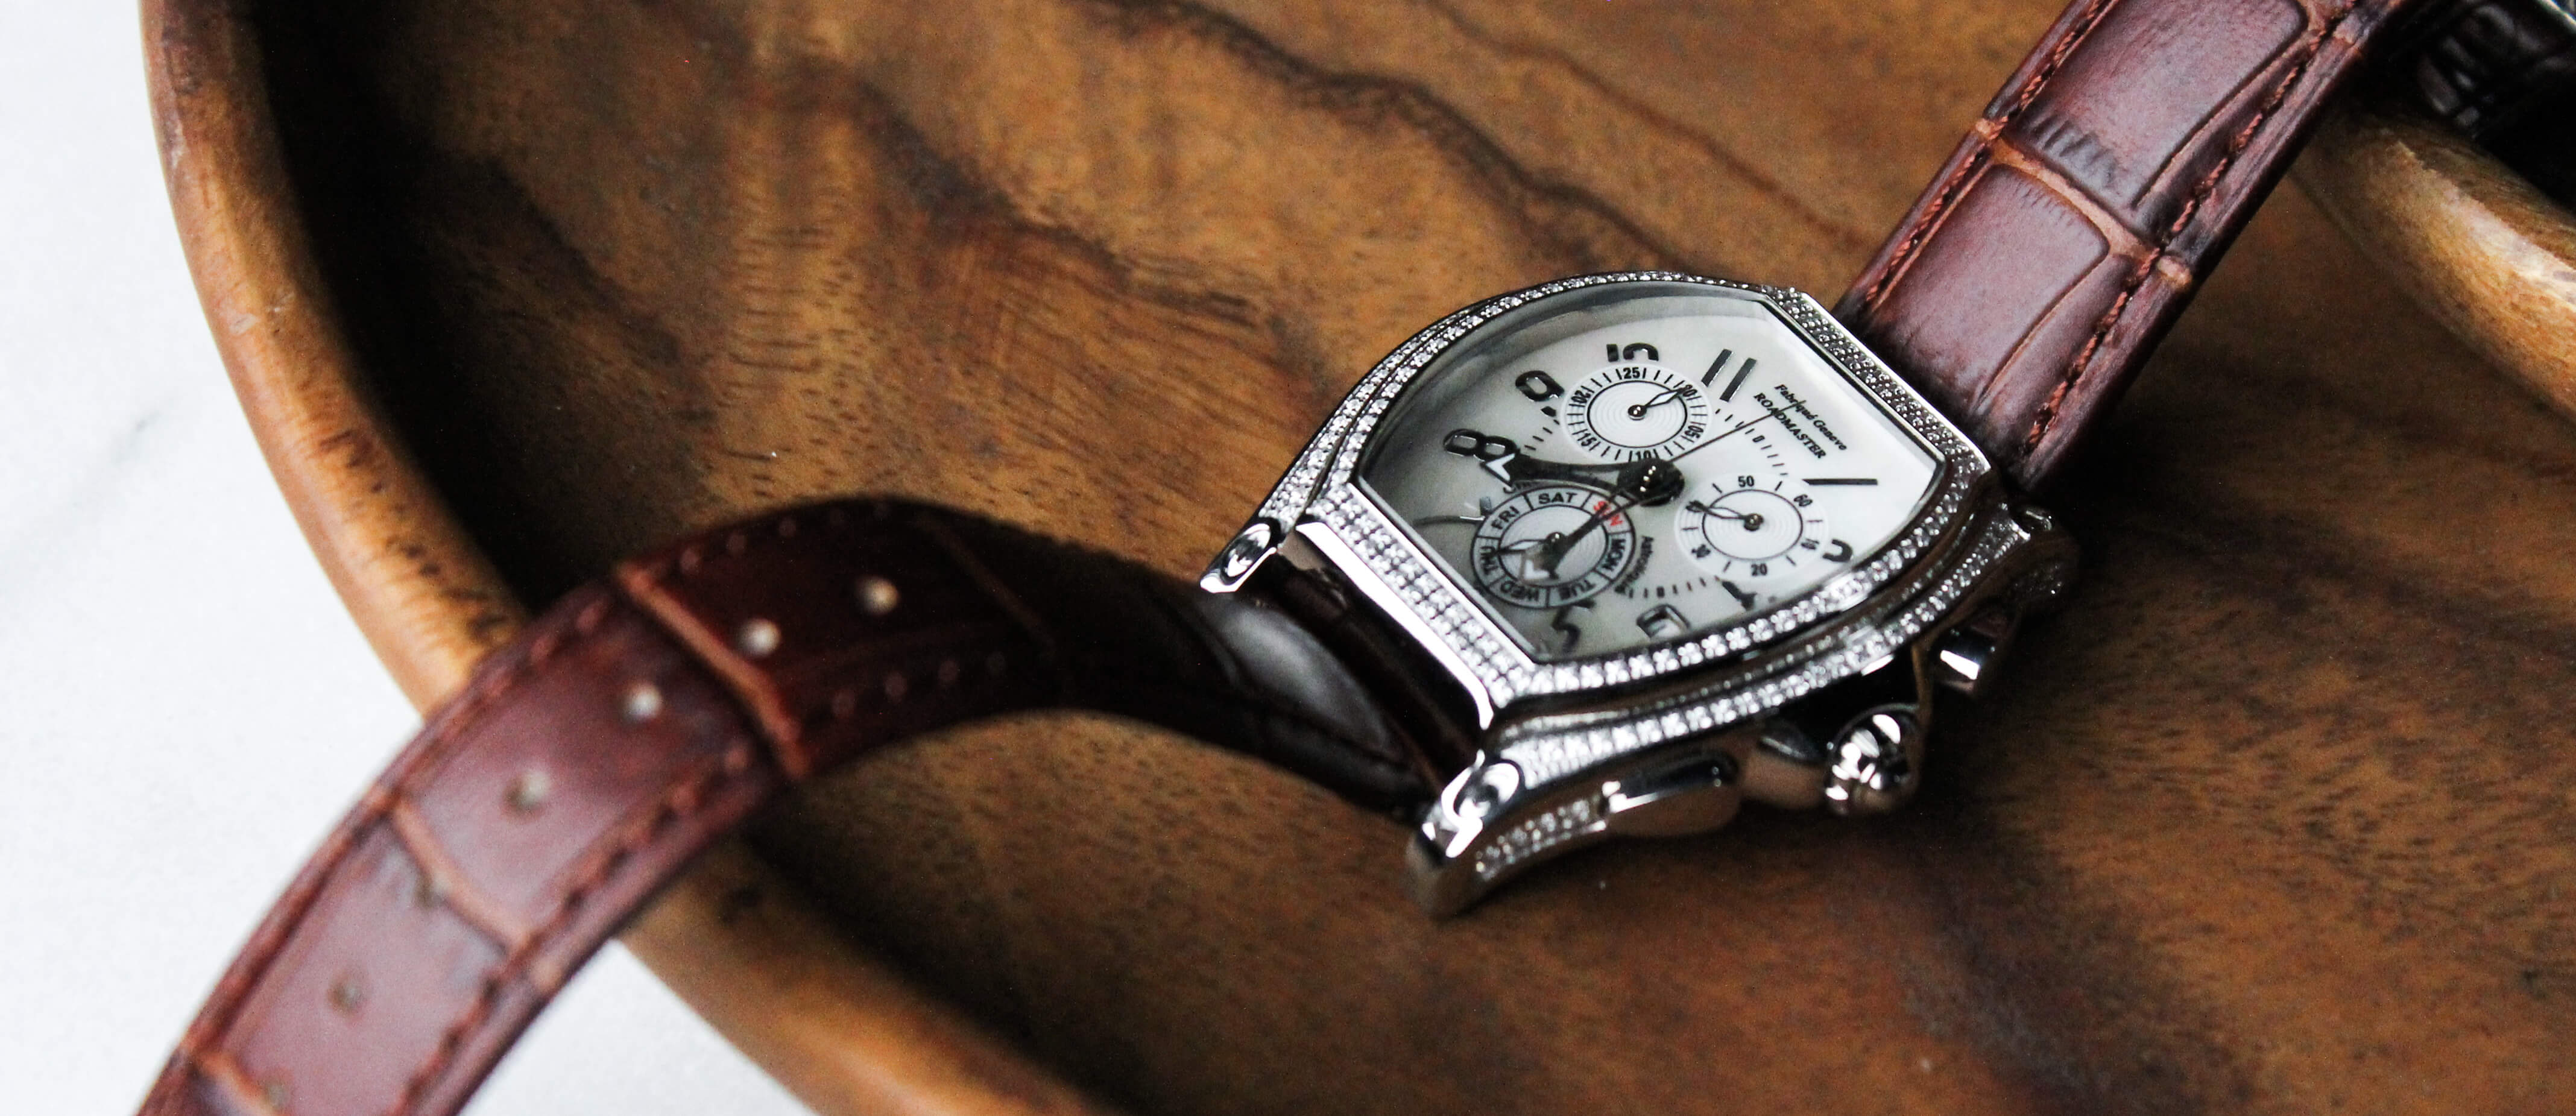 A close-up of a men's luxury watch.